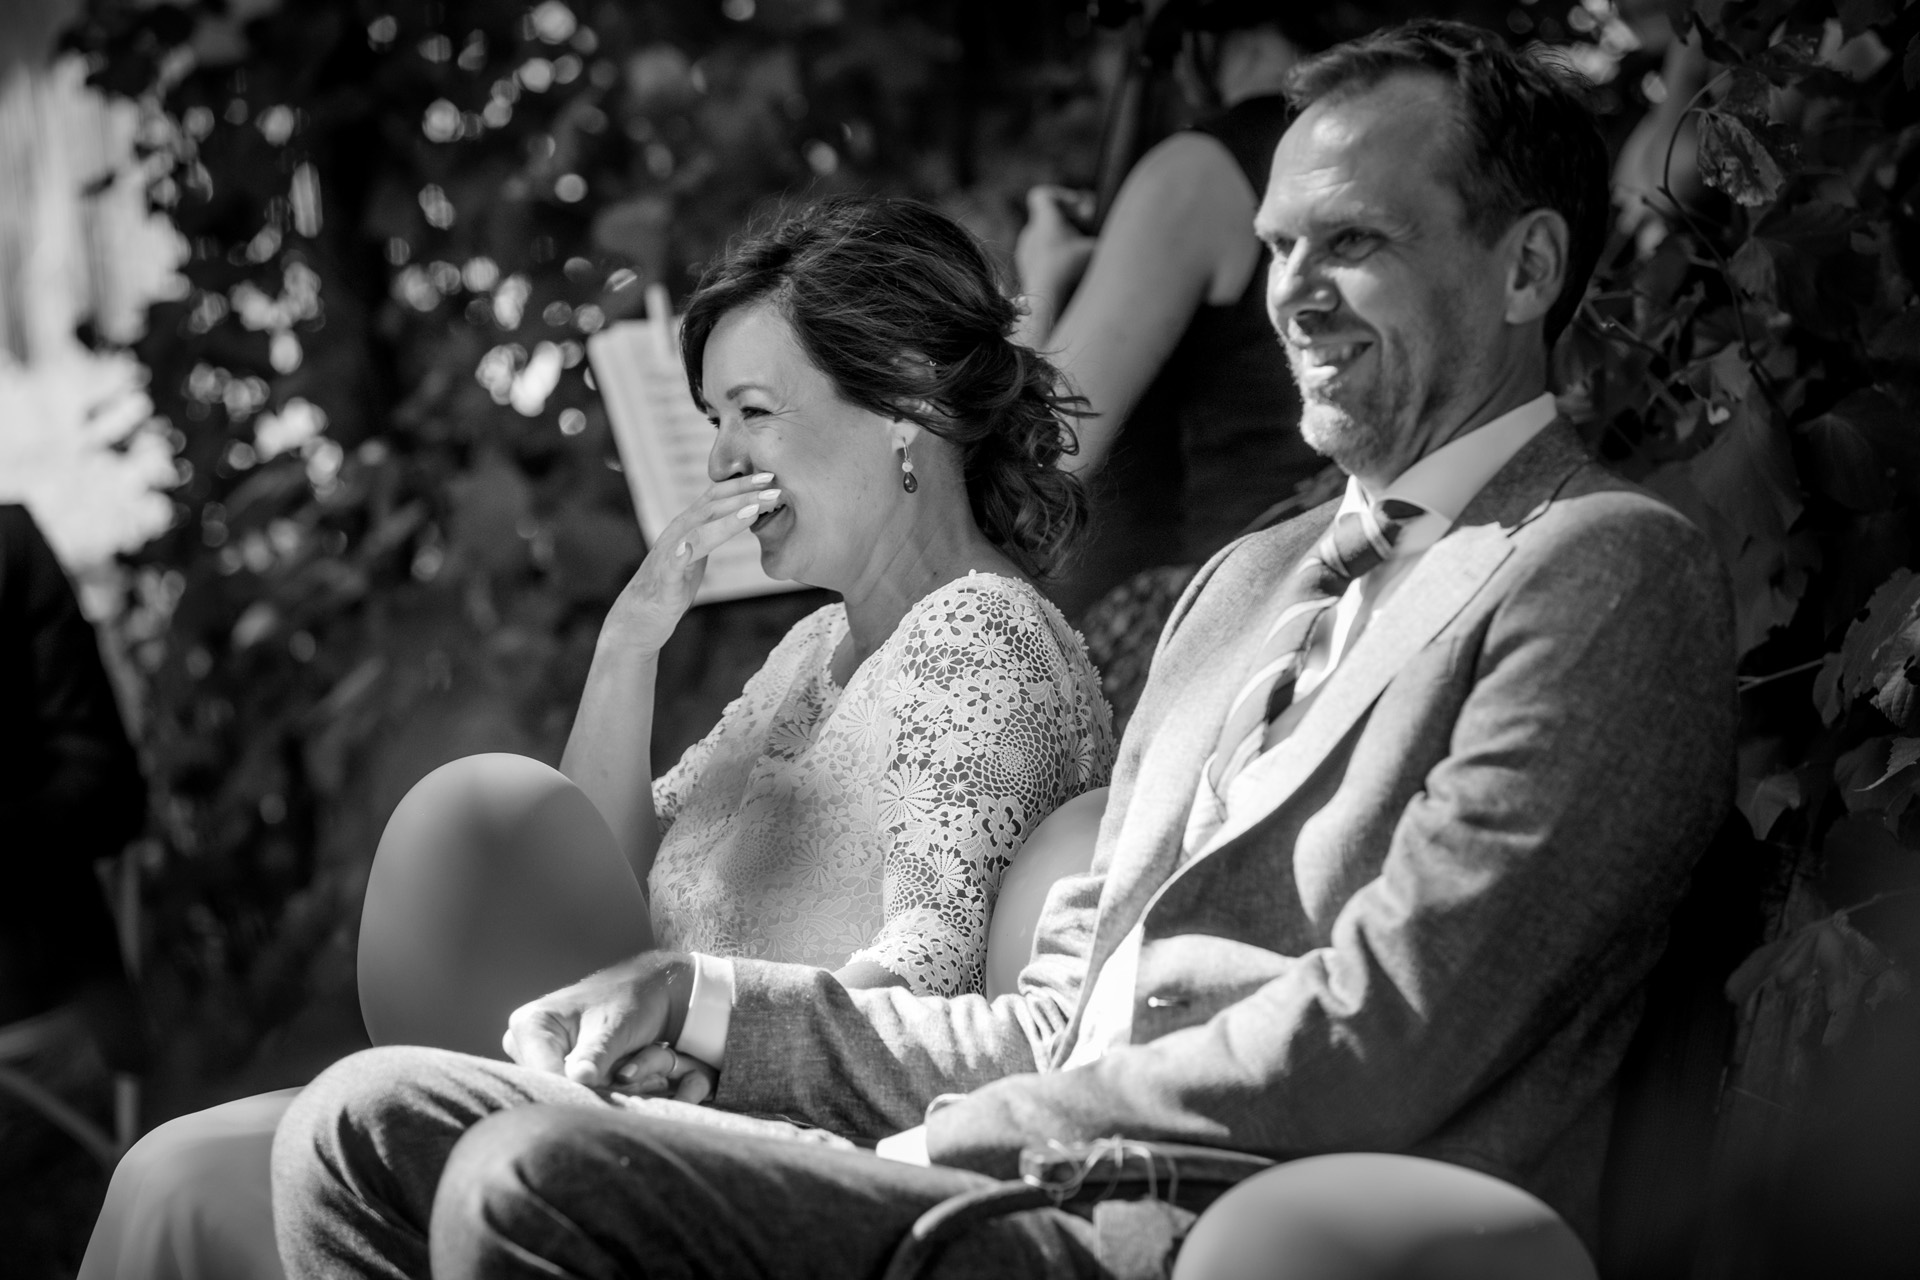 NL Outdoor Elopement Ceremony Photo | The bride and groom giggled with joy throughout much of their ceremony